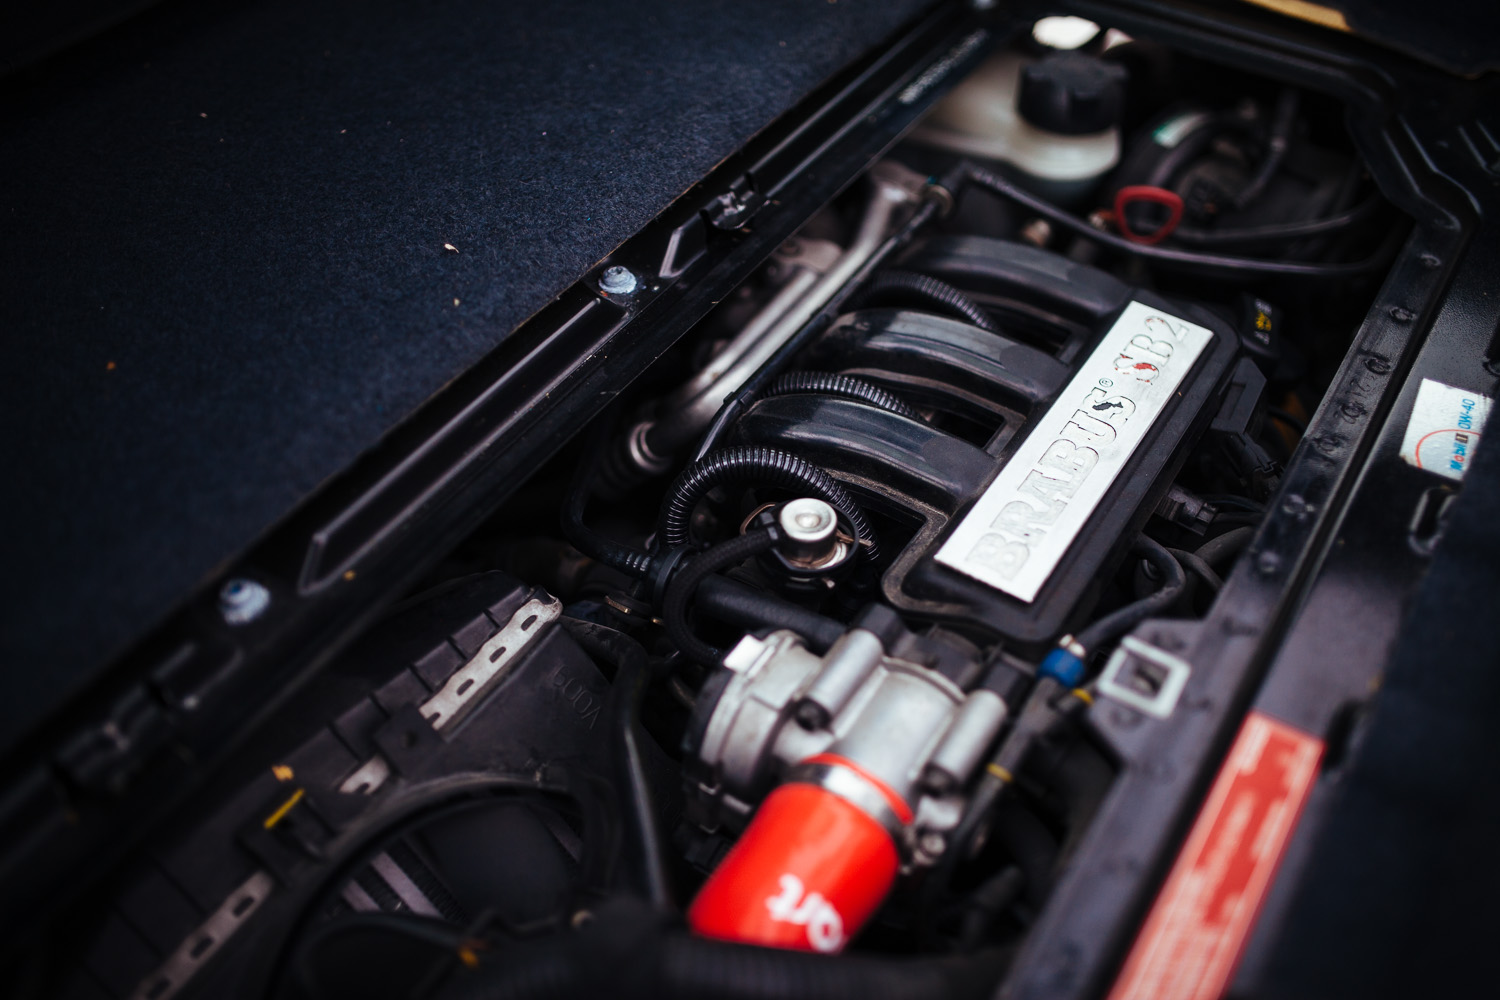 The Brabus SB2 performance kit were offered as a free opt-in upgrade. It's an  ECU remap , boosting output by about 10%.